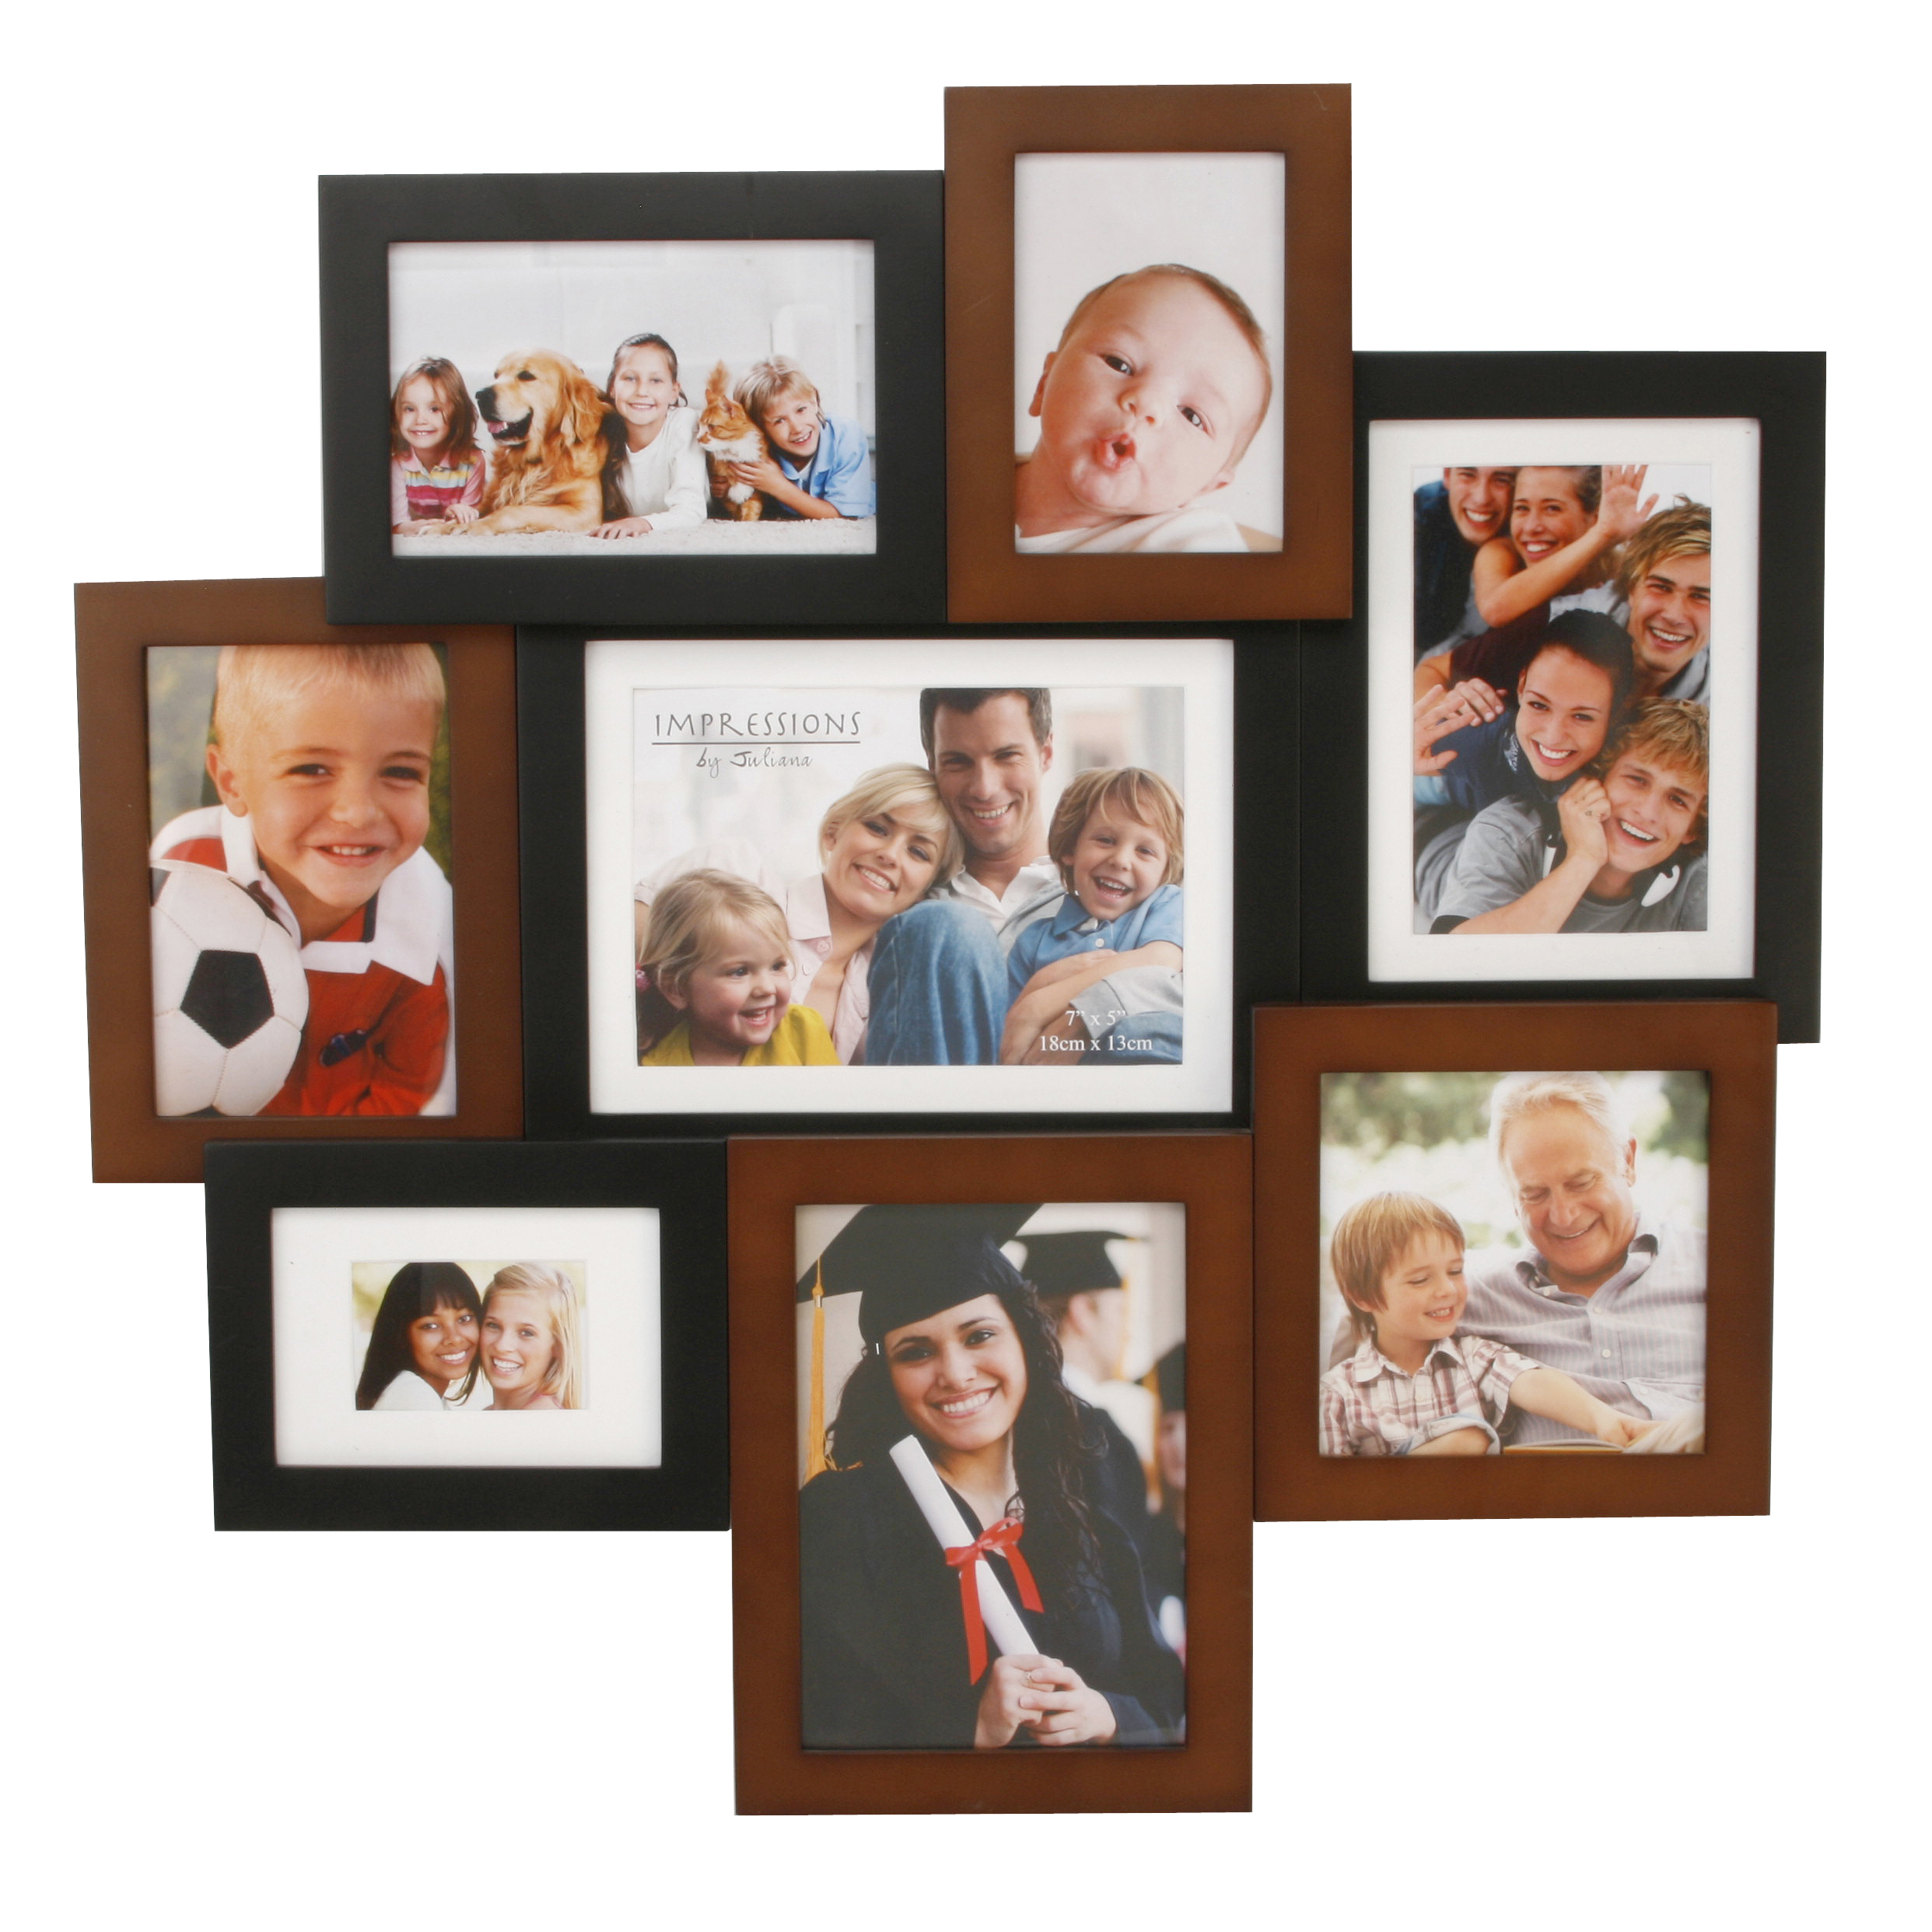 New Photo Frames every Day! Photo Editor Online! Photo